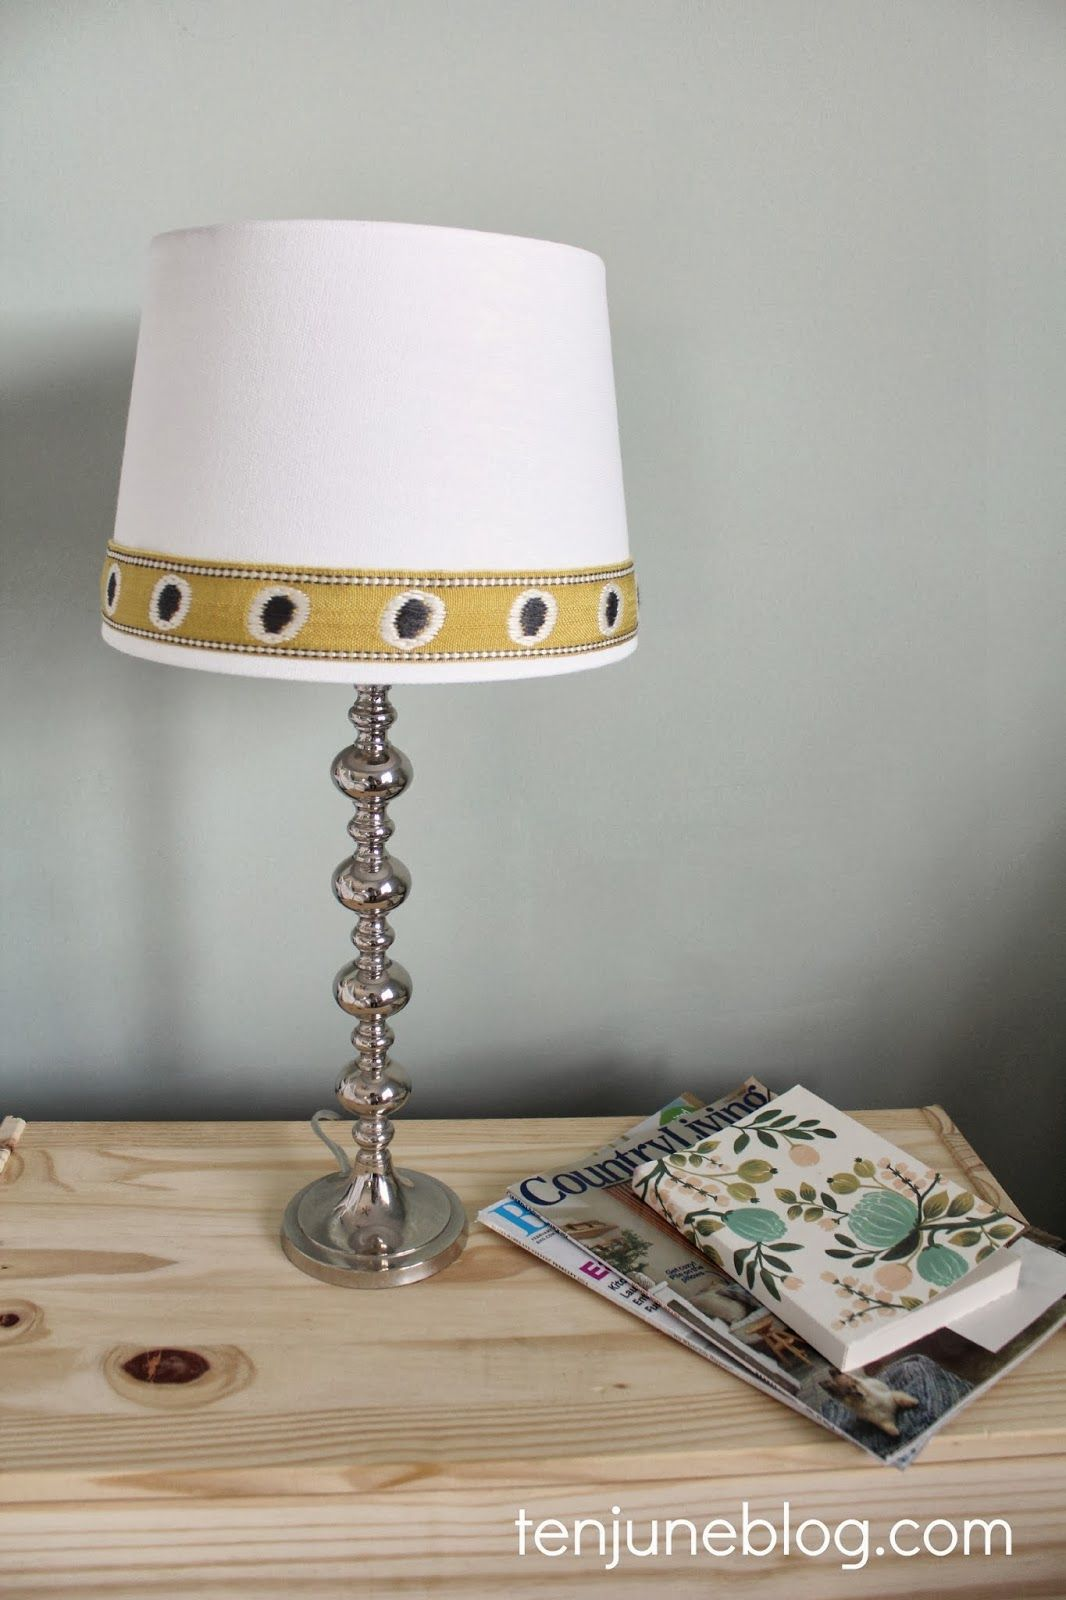 DIY Lampshade Makeover With Fabric Trim Via Ten June